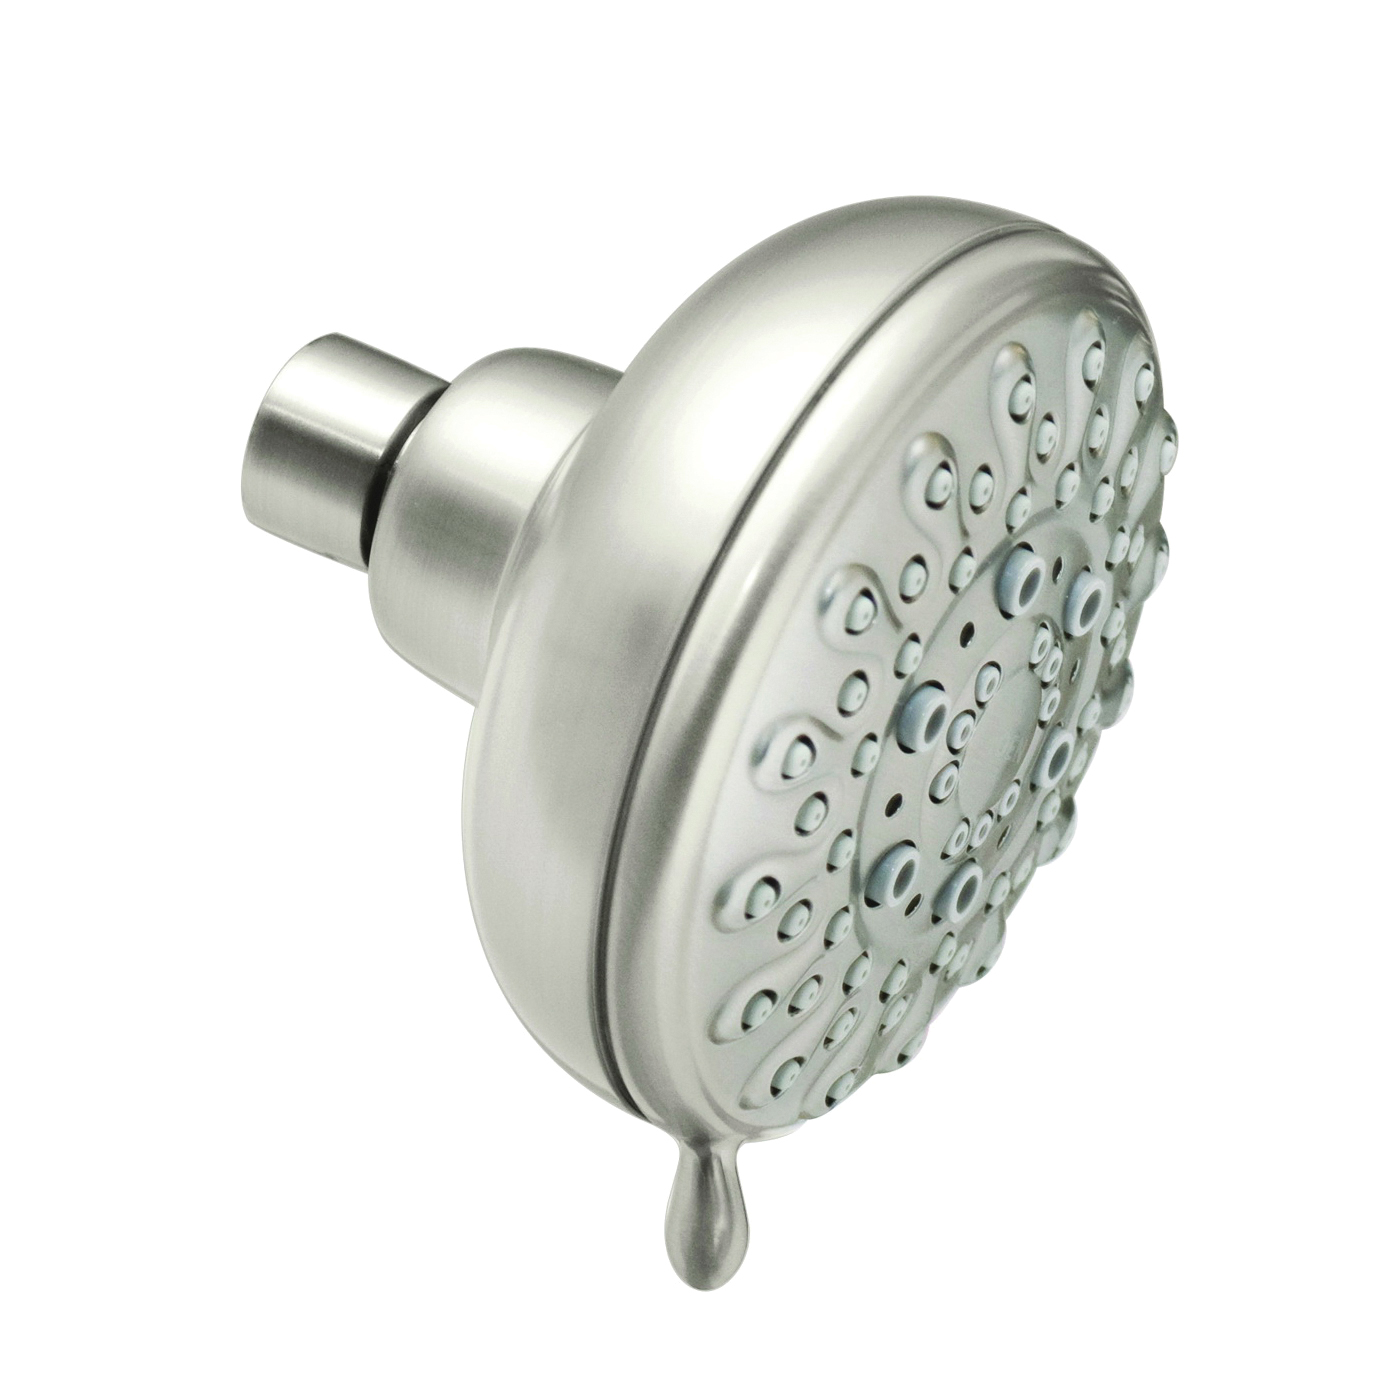 Picture of Moen Banbury 23045SRN Shower Head, 2 gpm, 1/2 in Connection, IPS, Brushed Nickel, 4 in Dia